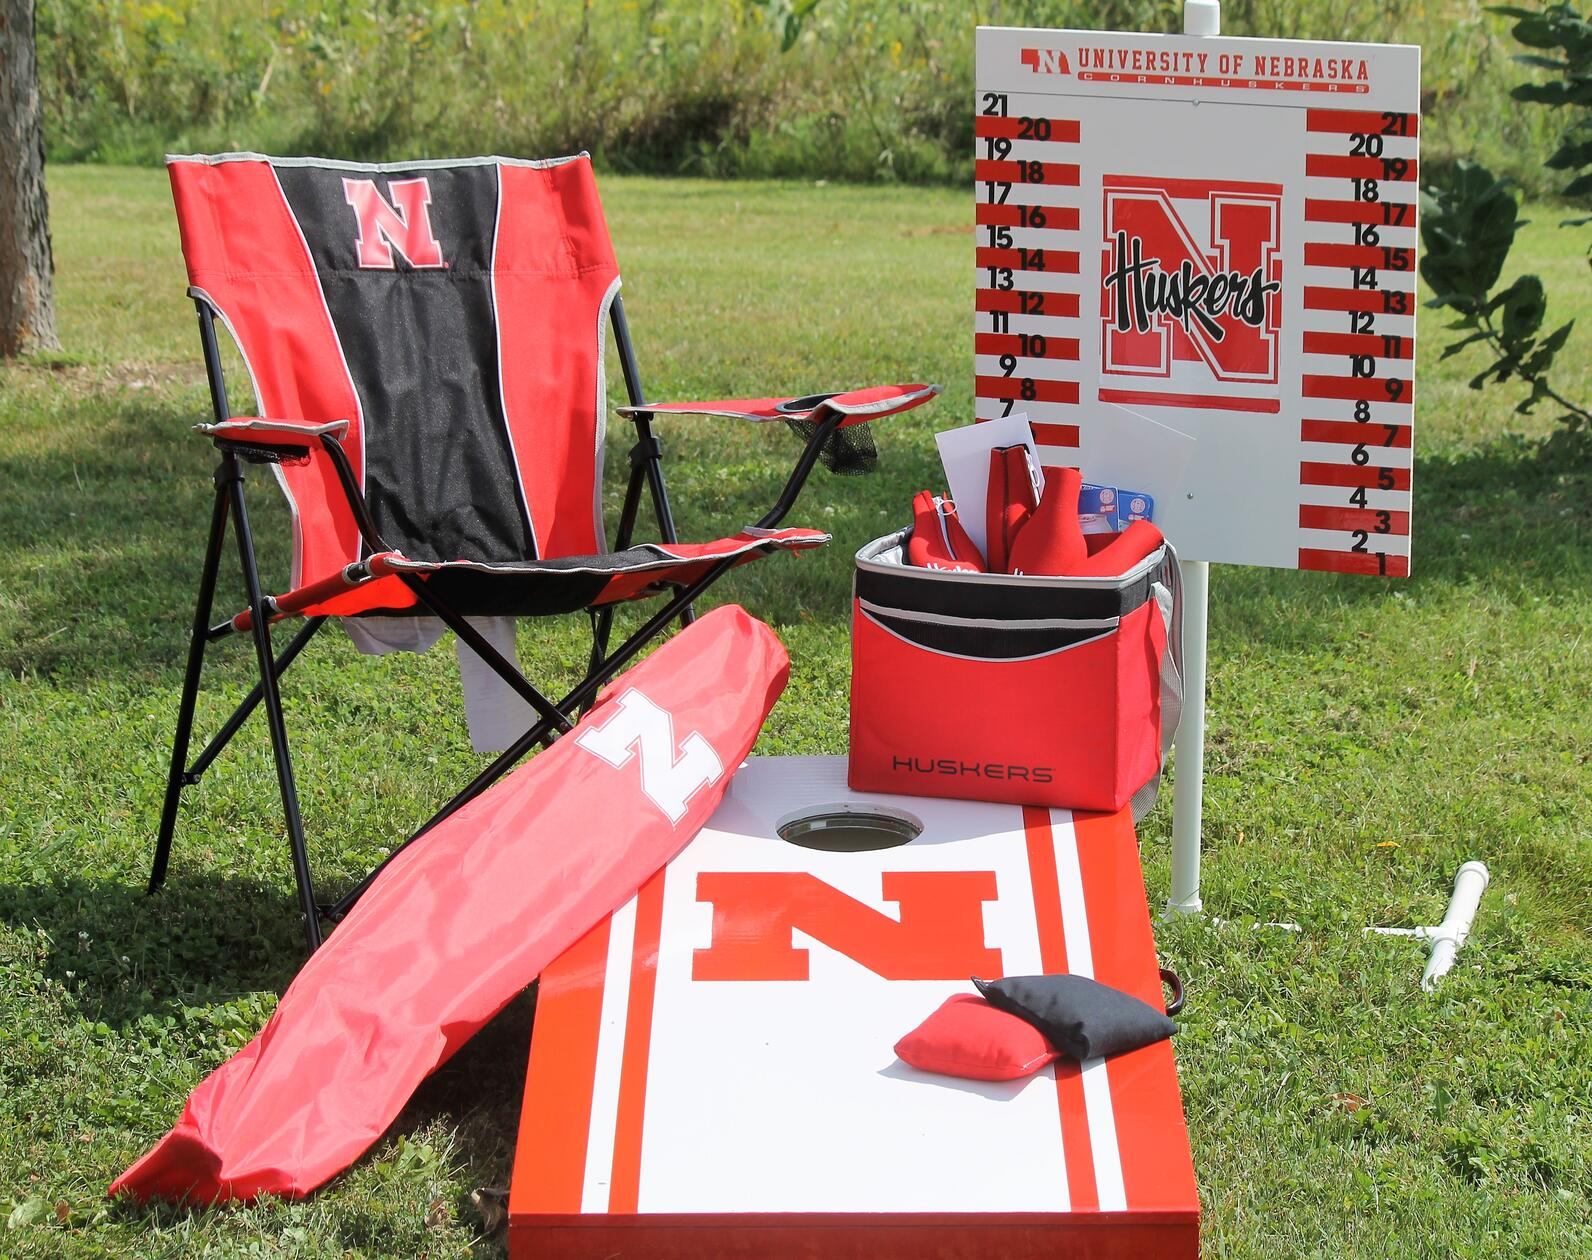 Husker recreation set of cornhole game and gifts